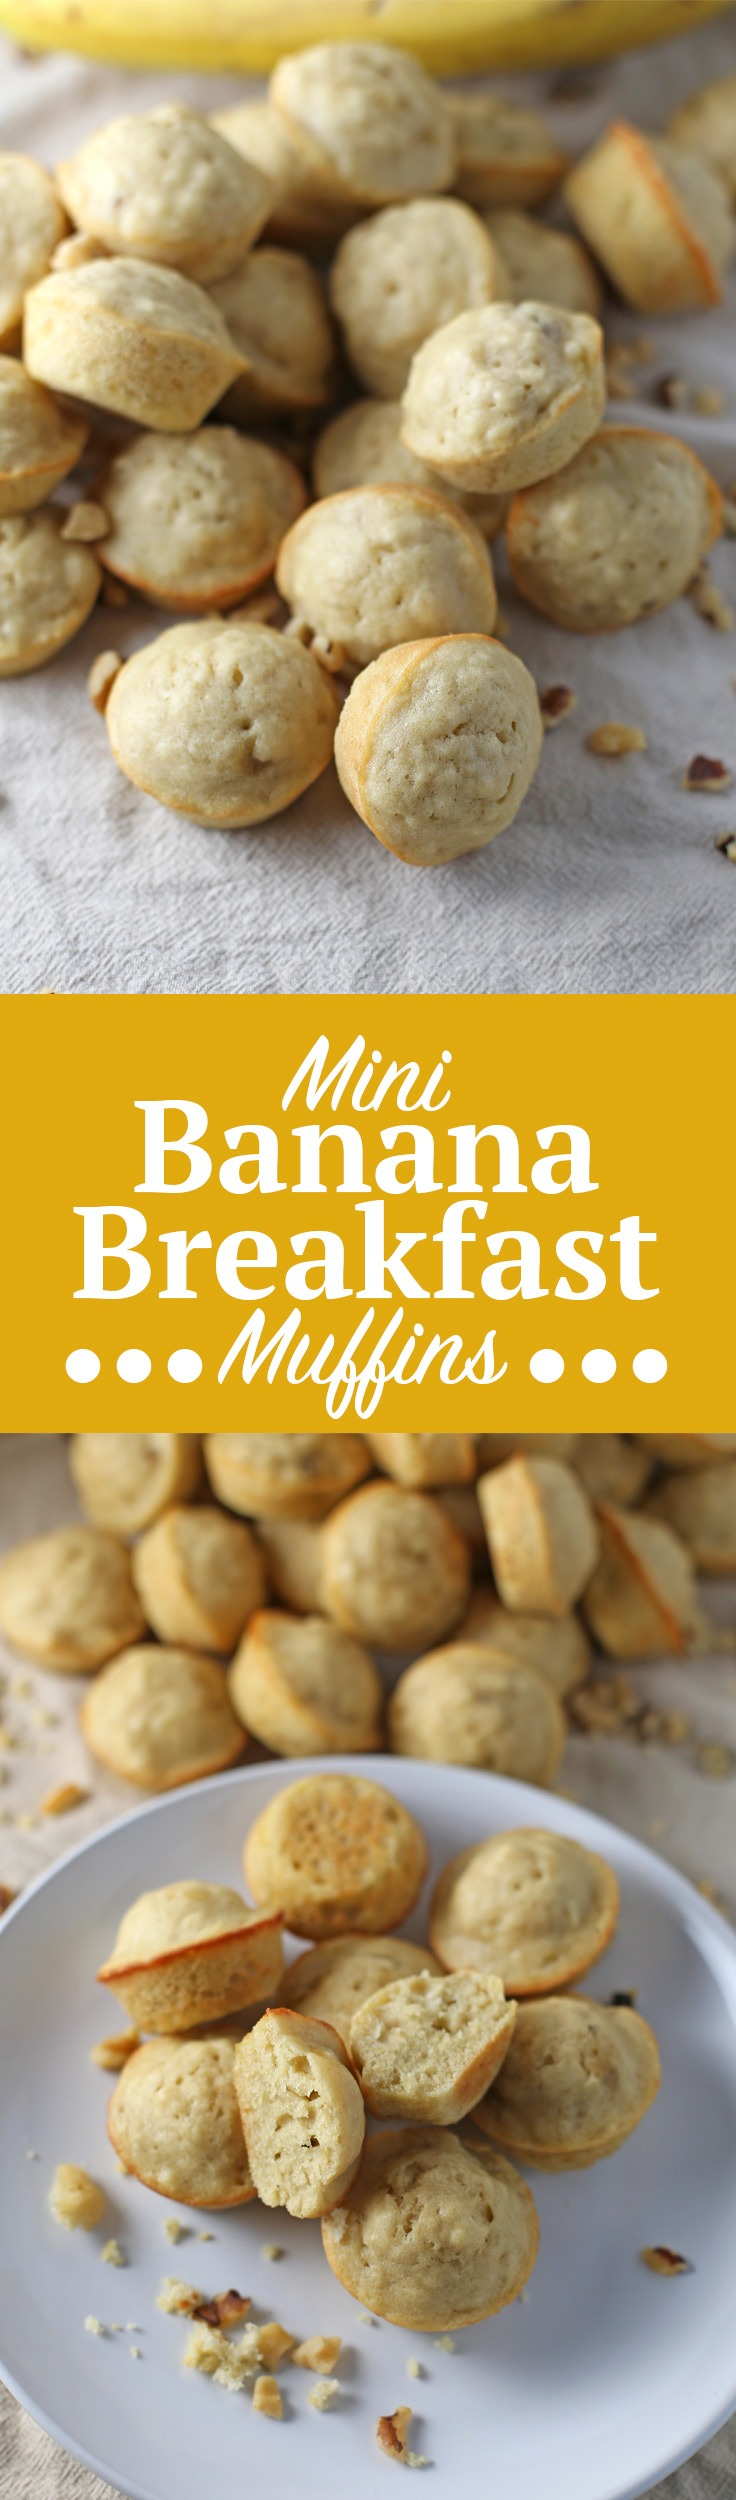 Mini Banana Breakfast Muffins. Super cute, quick and easy banana muffin recipe! These muffins are great for breakfast or as a snack and can be ready in no time. Grab the full recipe and link to your mini muffin tin by clicking through! | SeasonlyCreations.com | @SeasonlyBlog